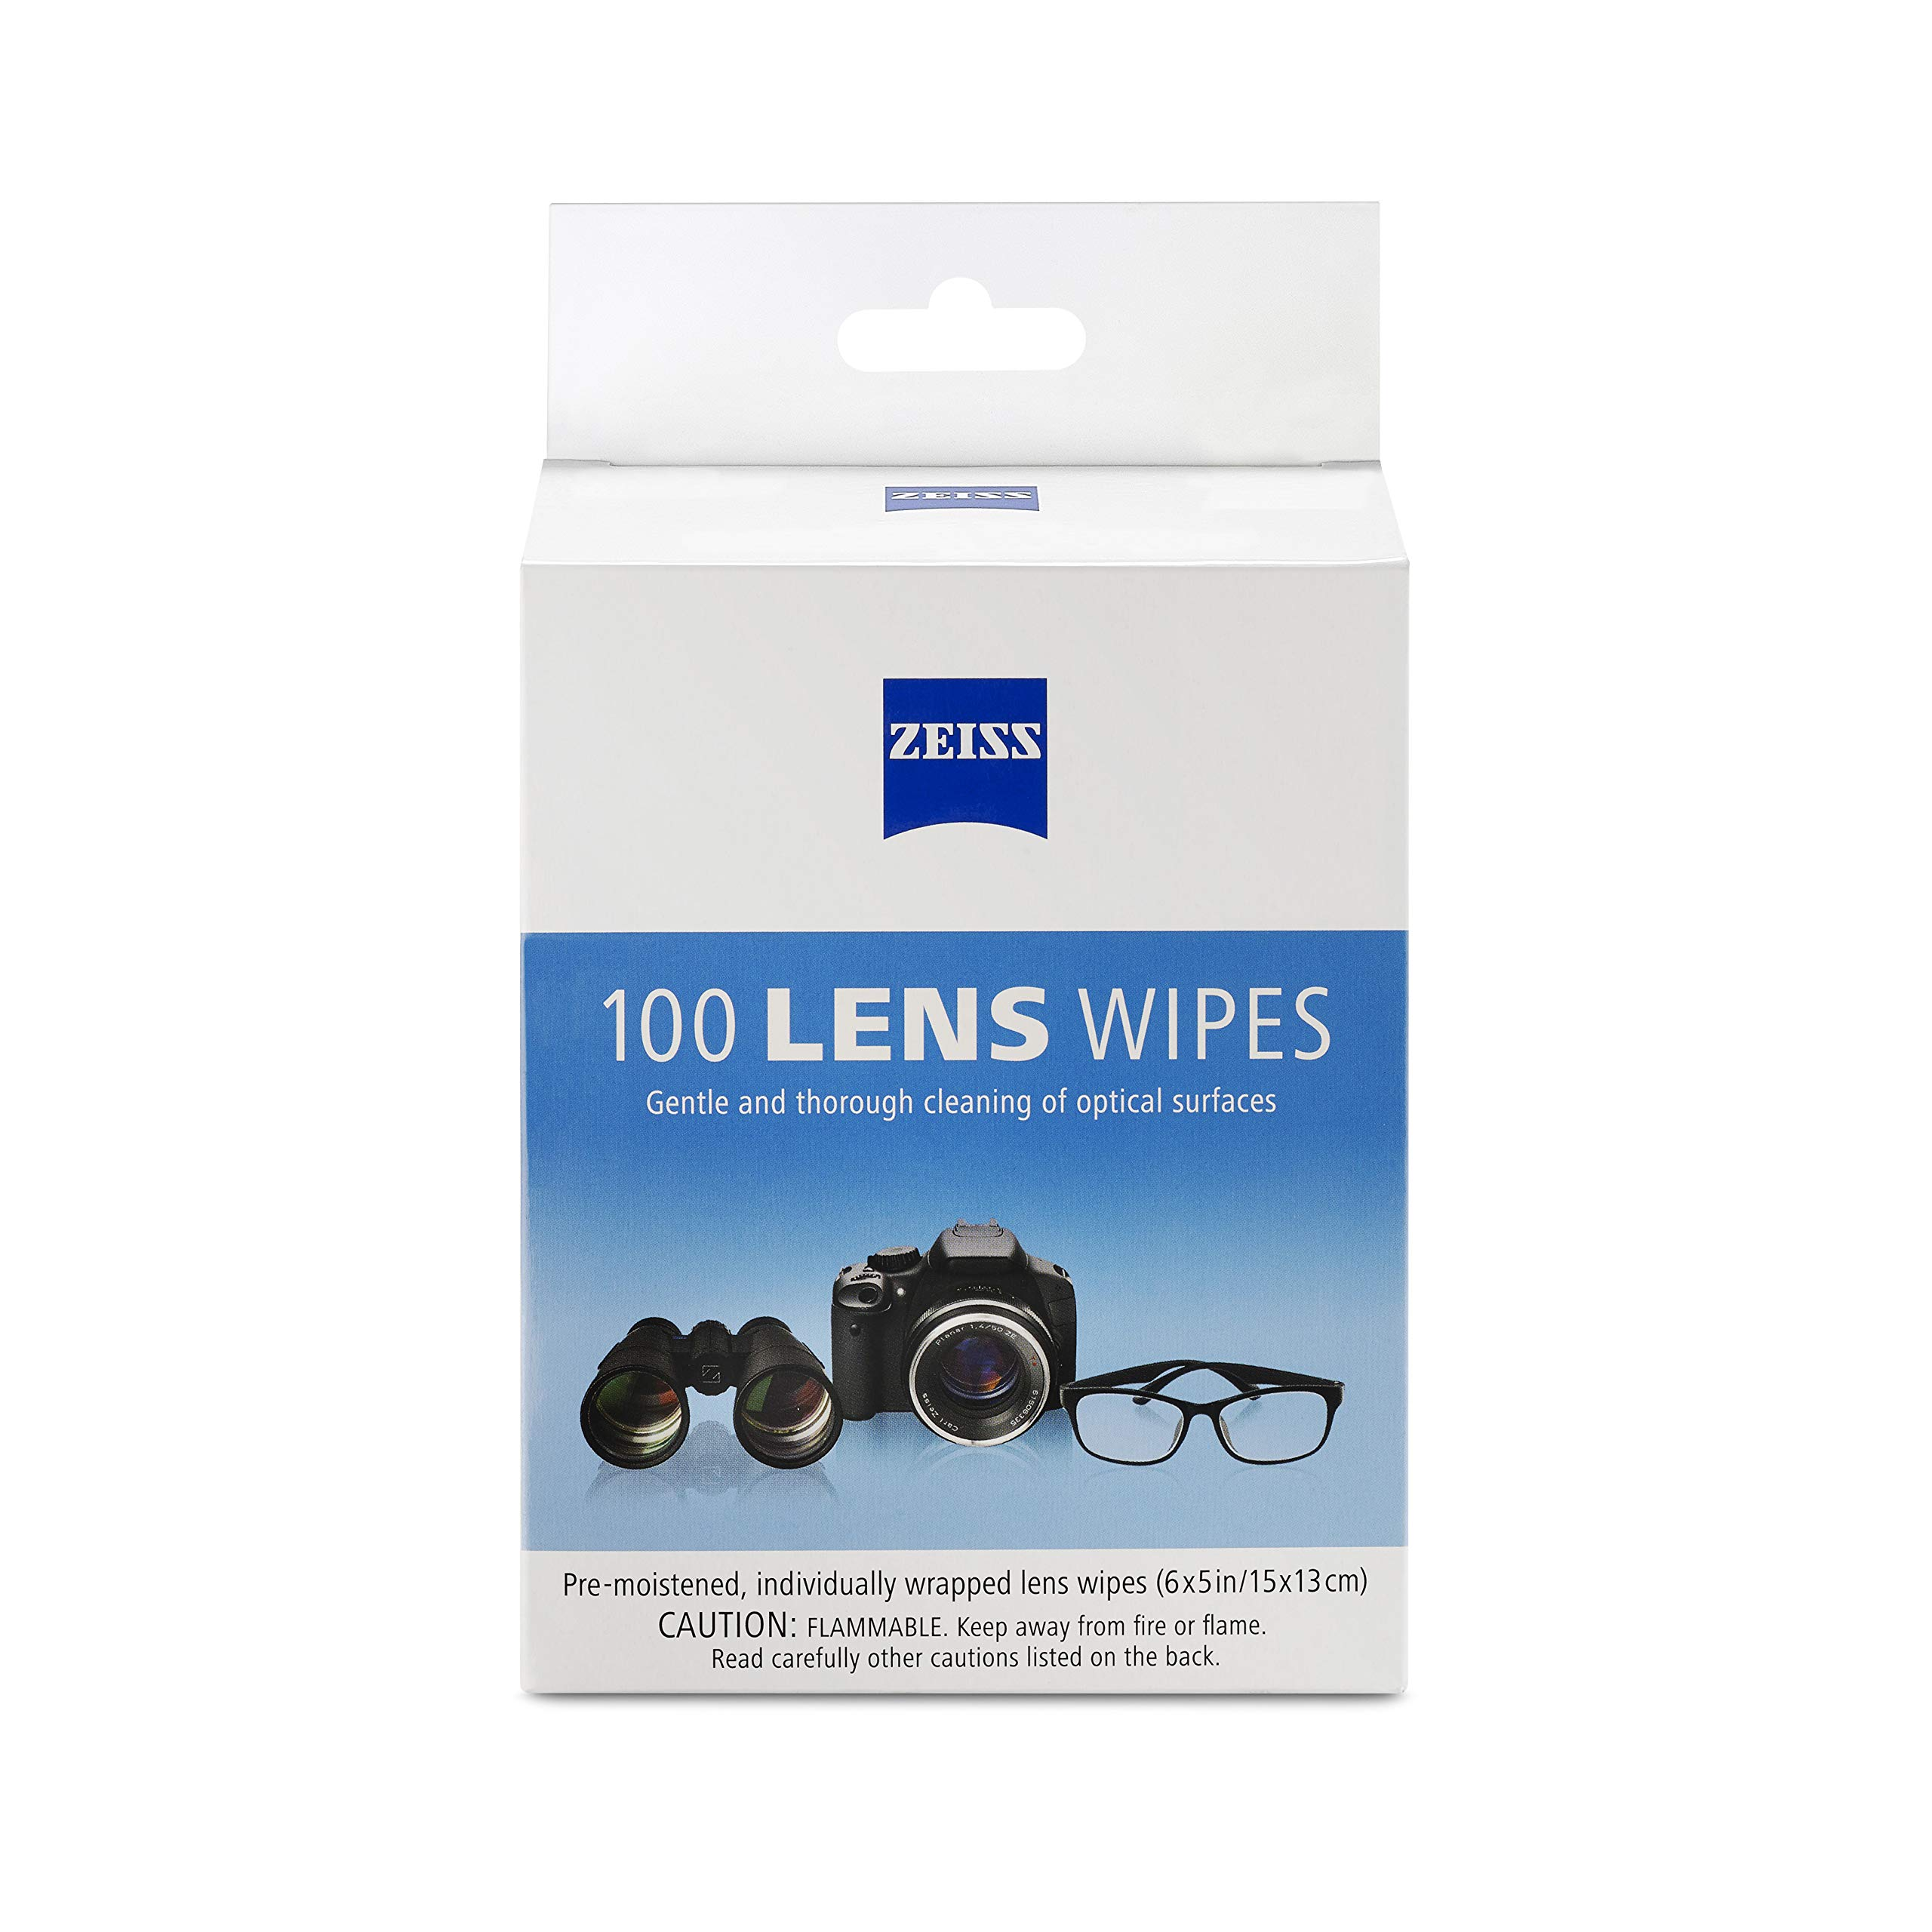 ZEISS 100 LENS WIPES